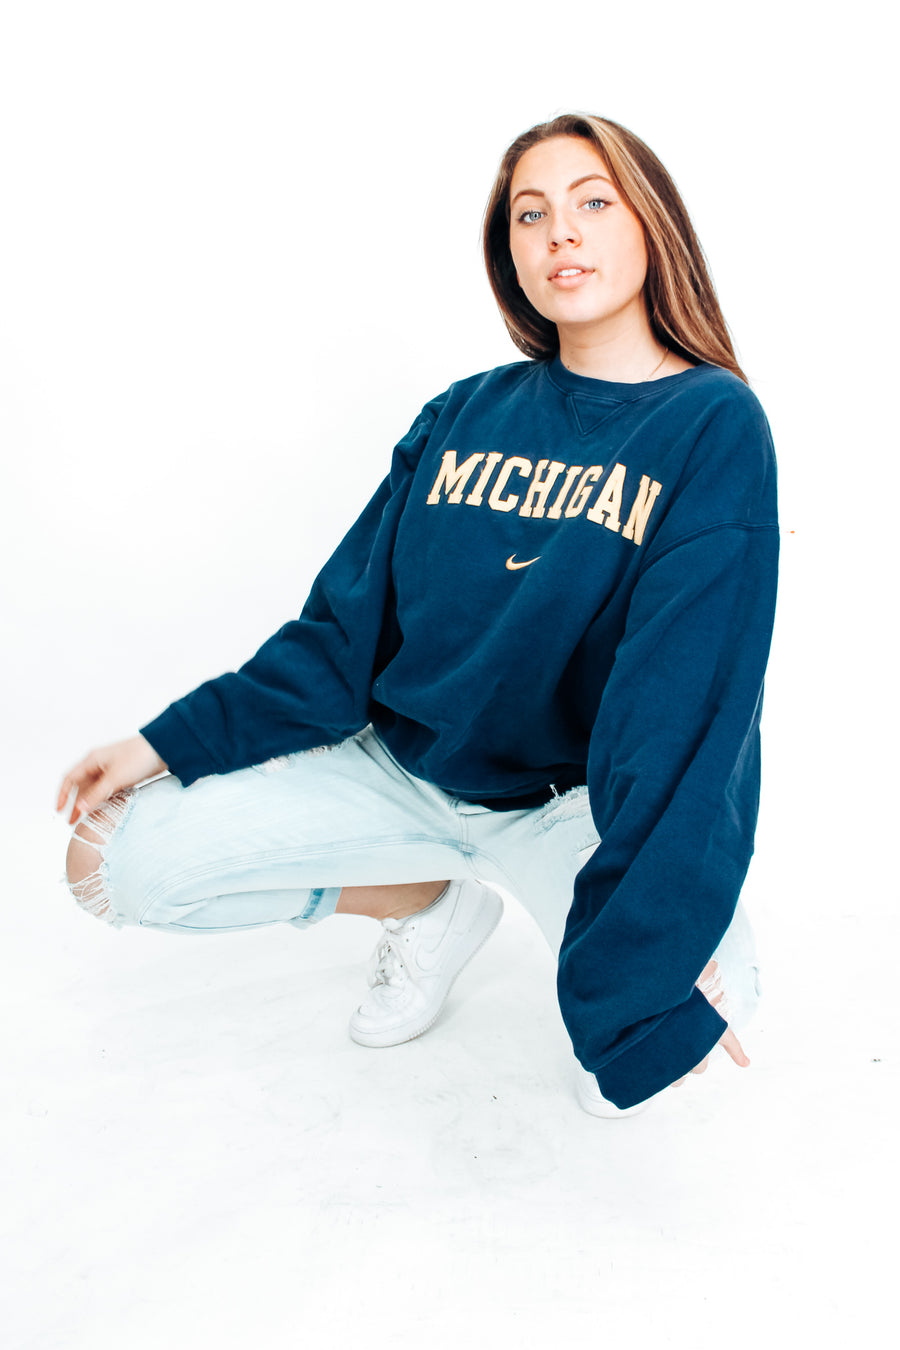 Vintage University of Michigan Nike Sweatshirt - L